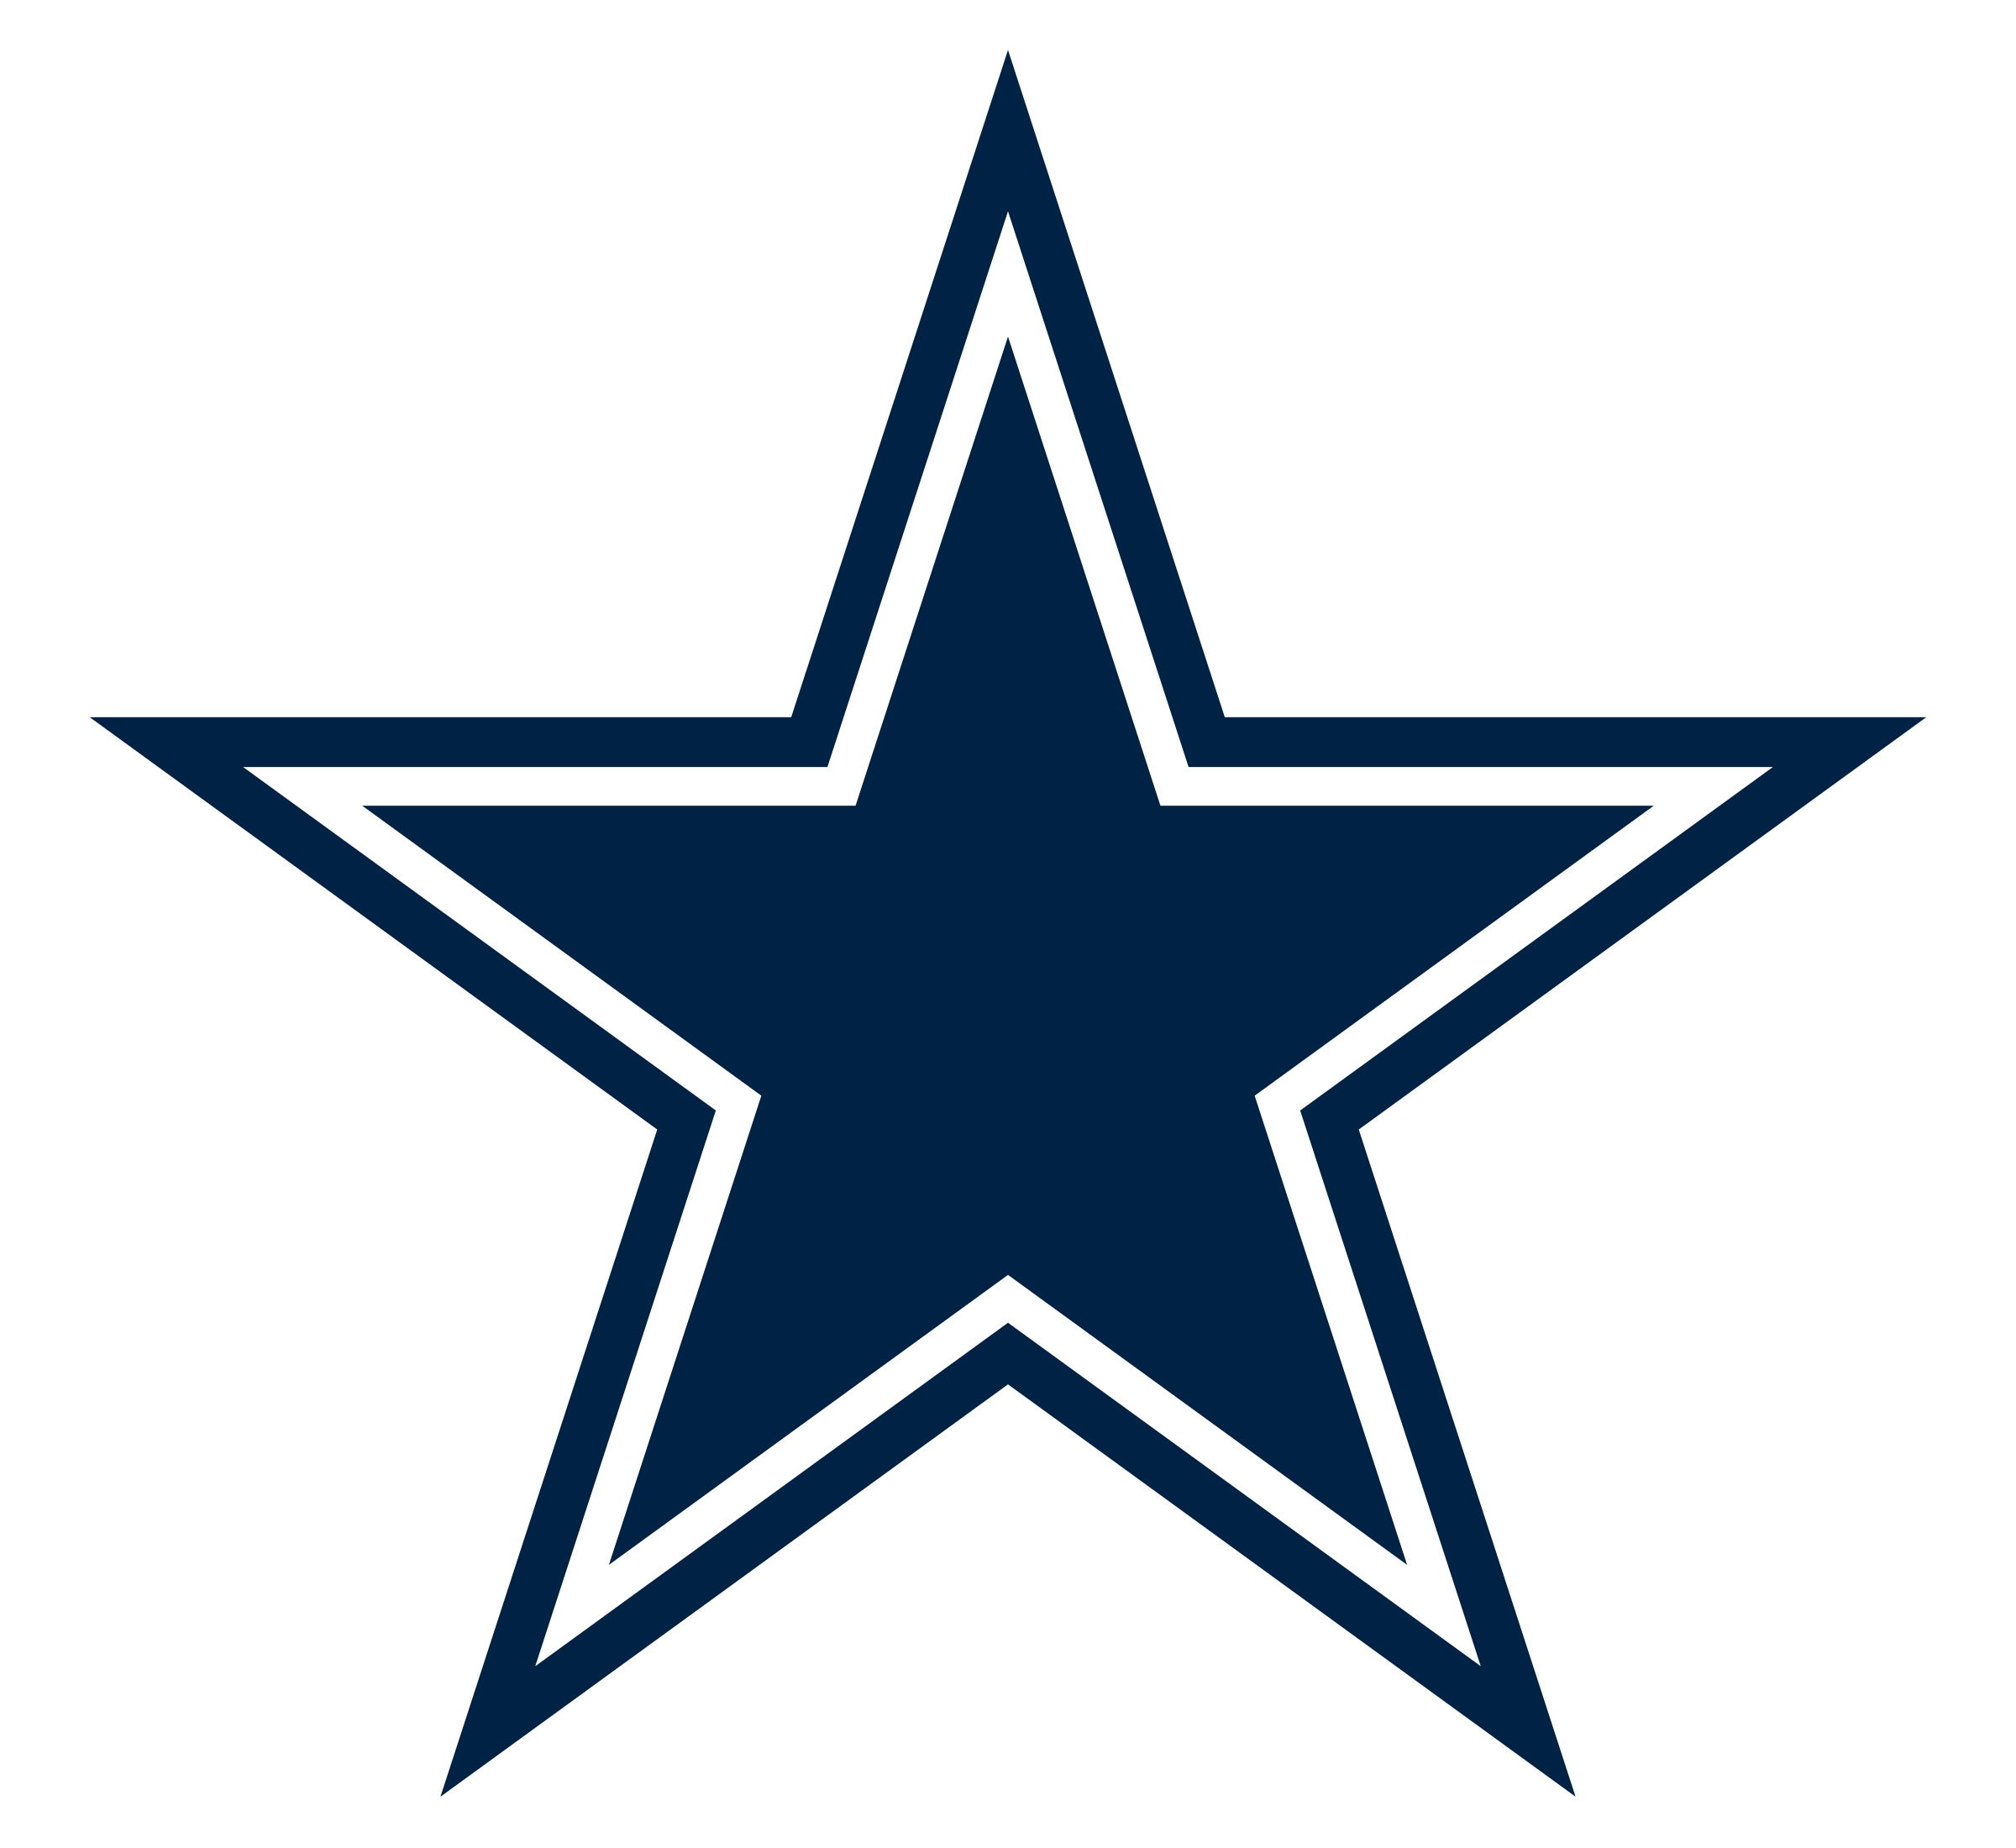 Dallas Cowboys Logo PNG Transparent & SVG Vector.